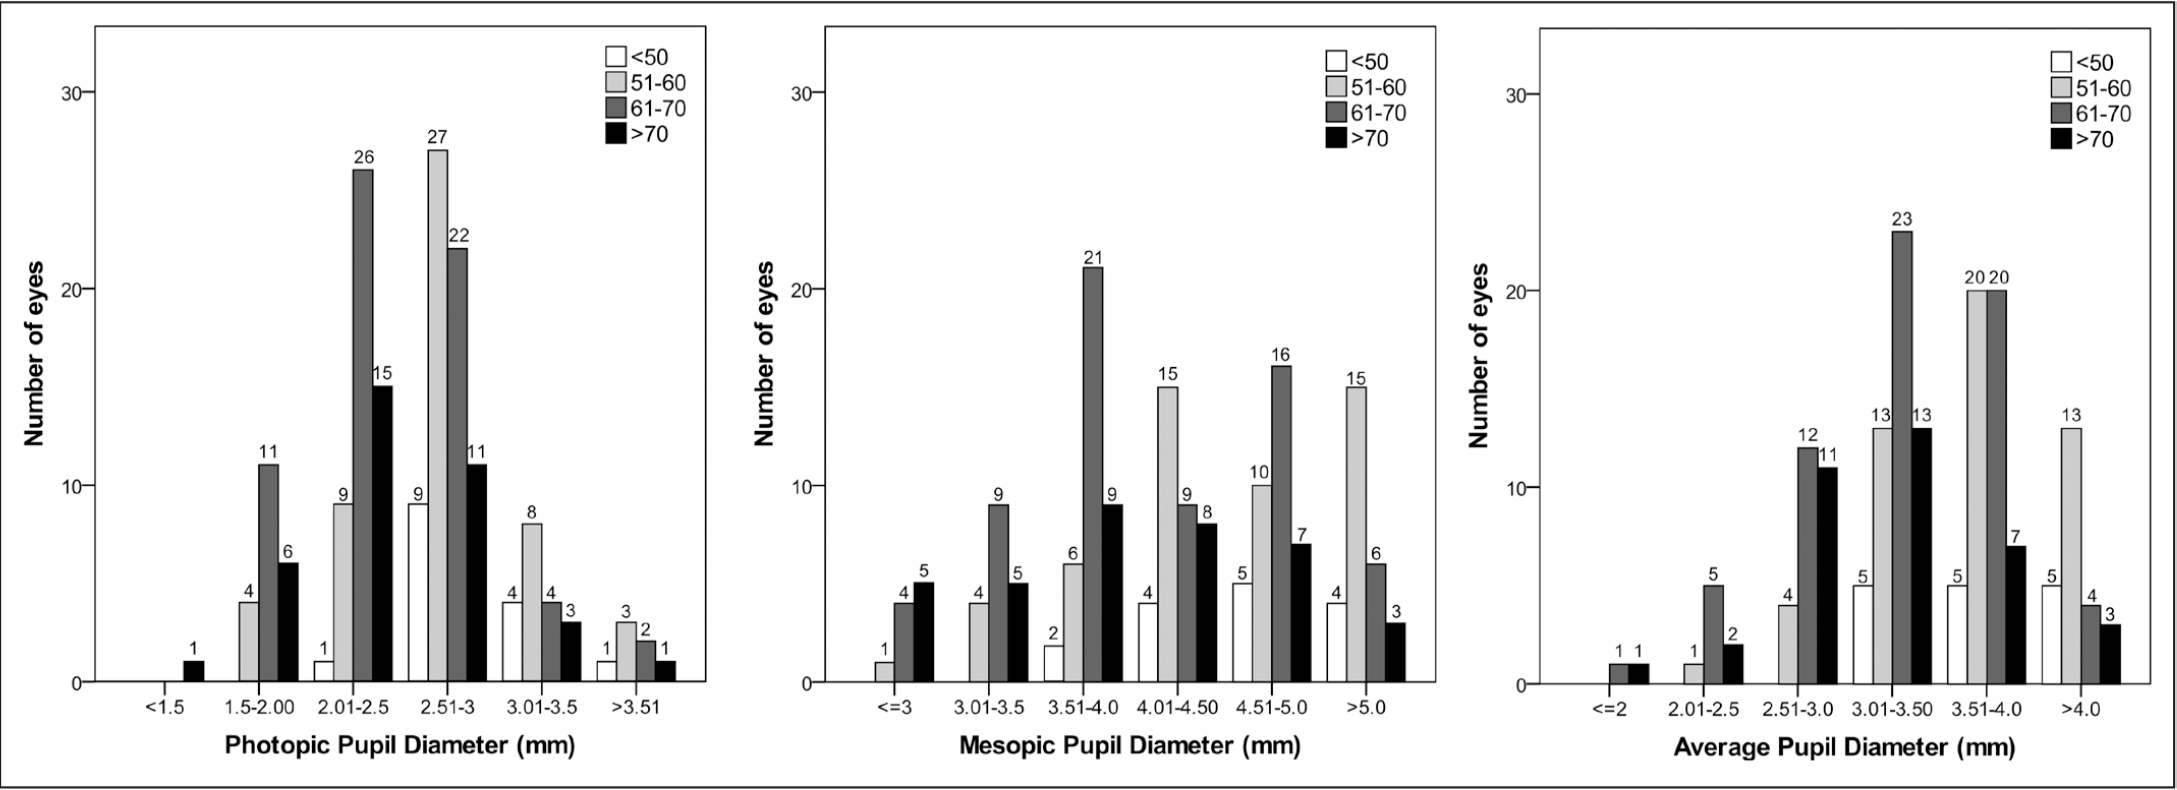 Distribution of (A) photopic, (B) mesopic, and (C) average pupil diameters according to age ranges for all eyes included in the study.